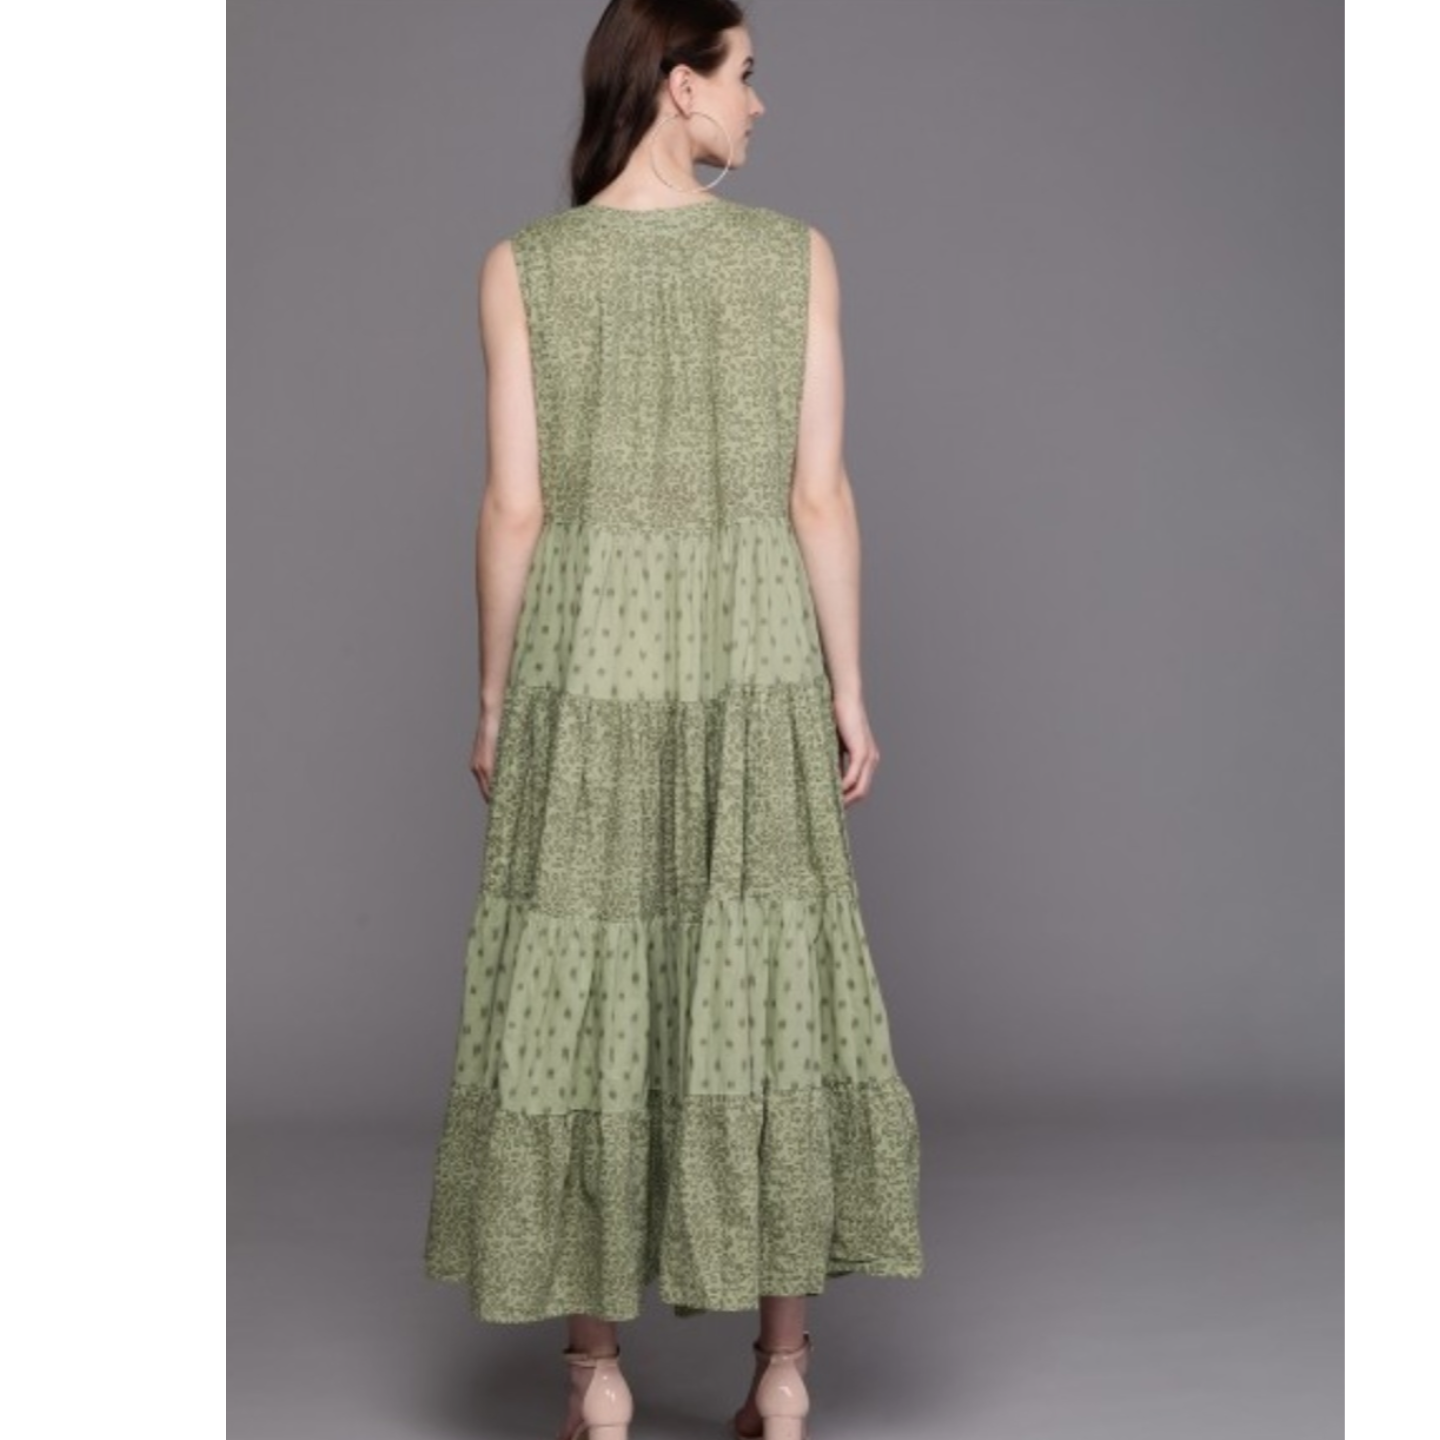 Olive Green Printed Tiered Maxi Dress